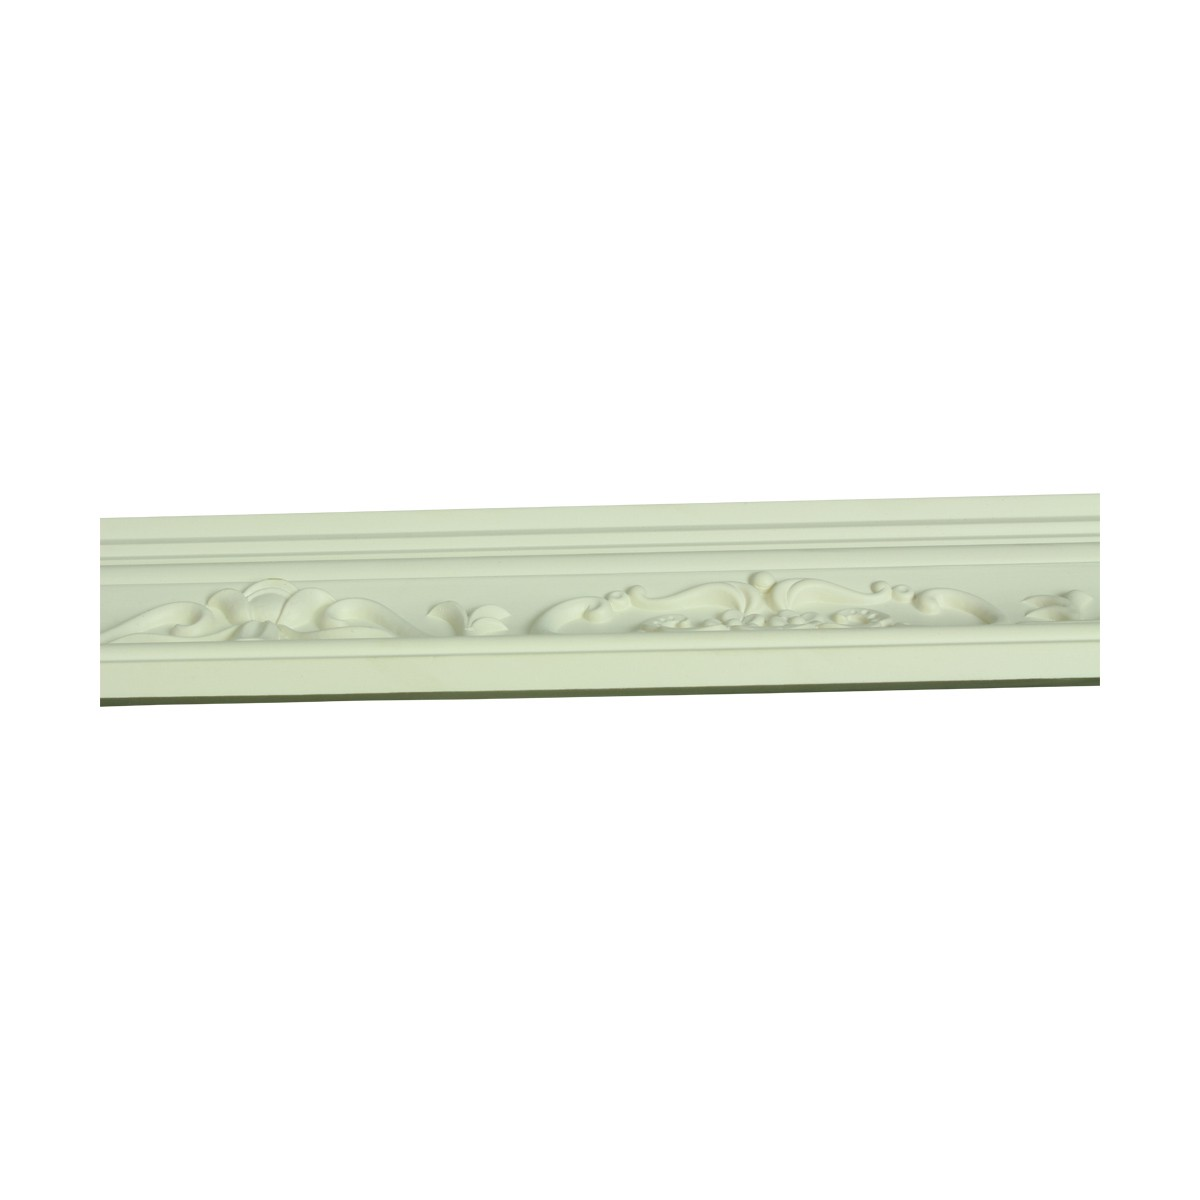 Renovators Supply Ornate Cornice White Urethane Amaryllis Design 5 Pieces Totaling 470 Length White PrePrimed Urethane Crown Cornice Molding Cornice Crown Home Depot Ekena Millwork Molding Wall Ceiling Corner Cornice Crown Cove Molding